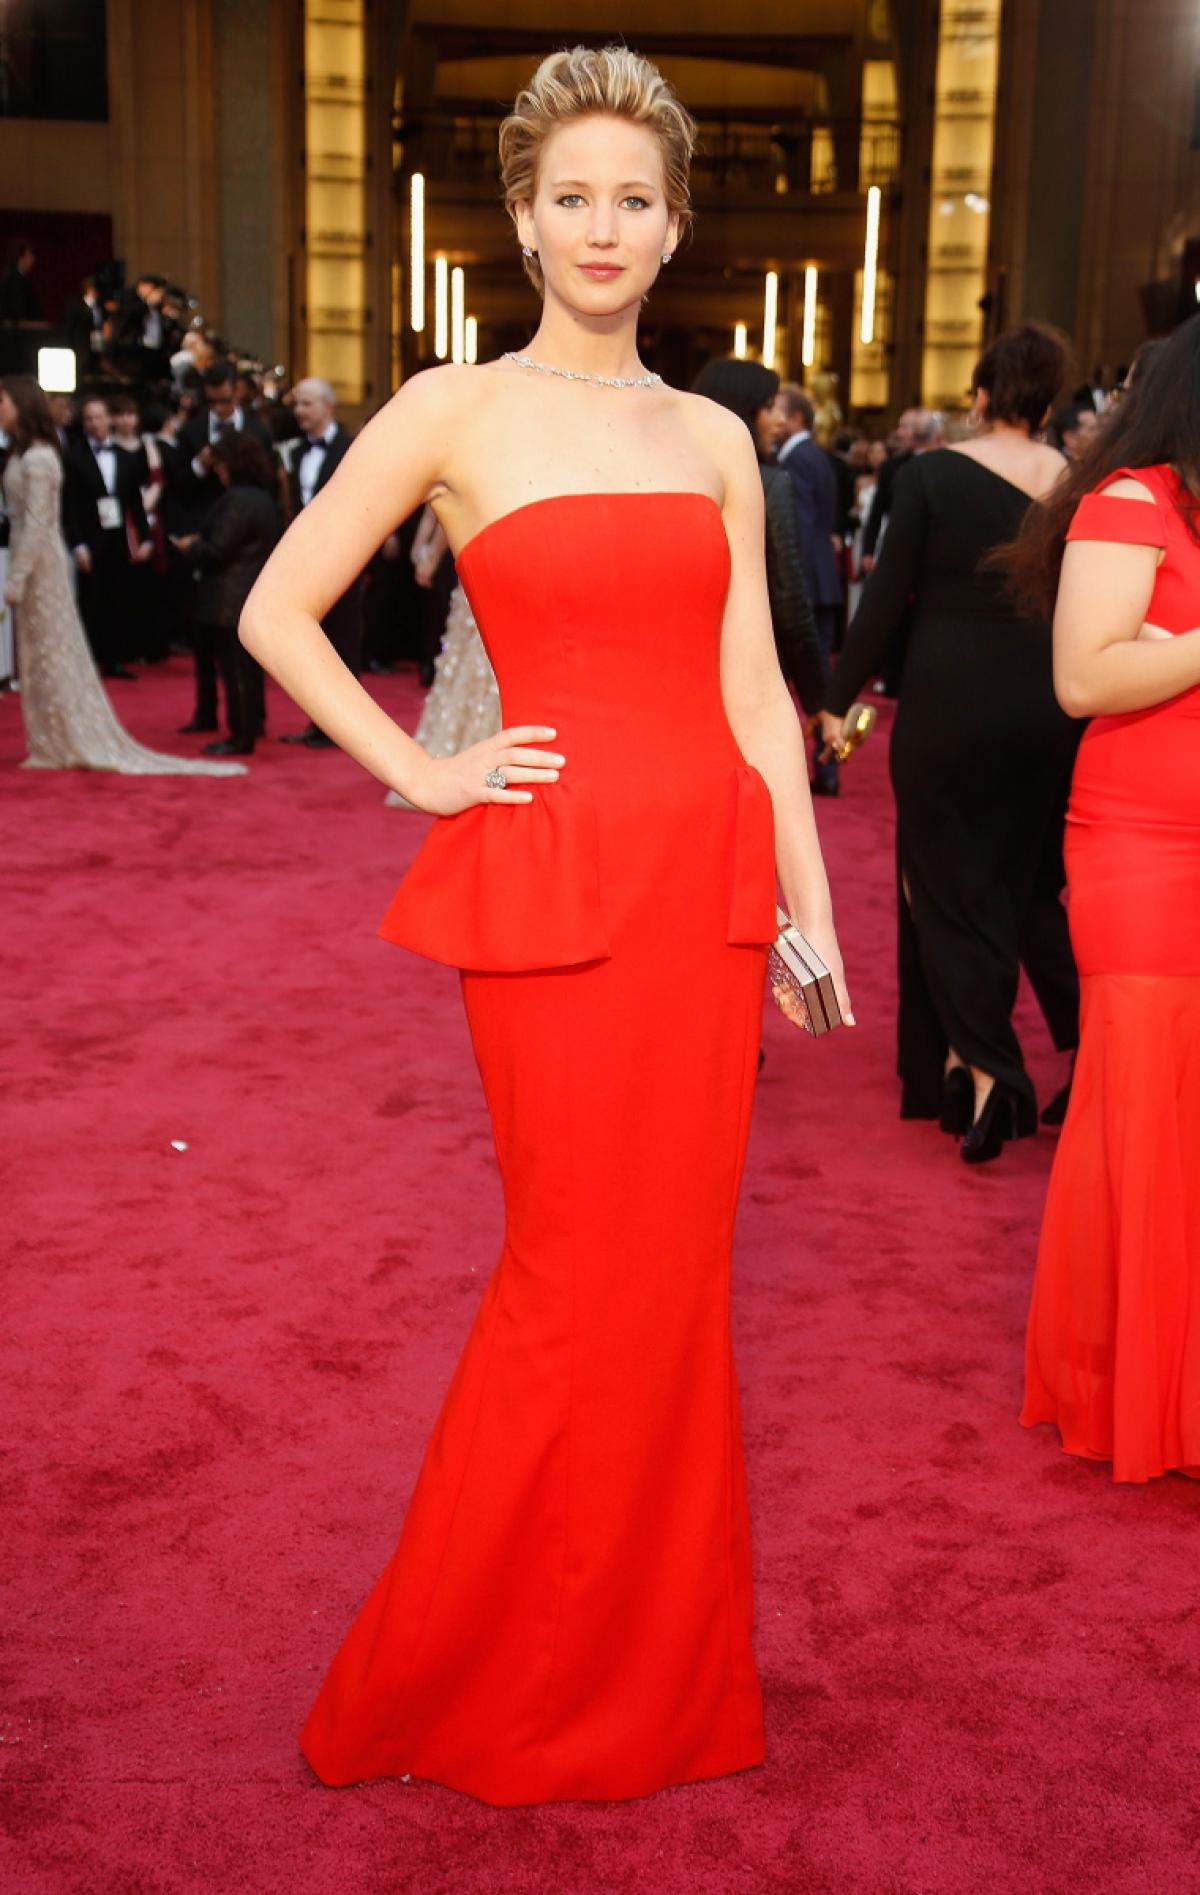 In a strapless peplum Dior gown at The Academy Awards 2014